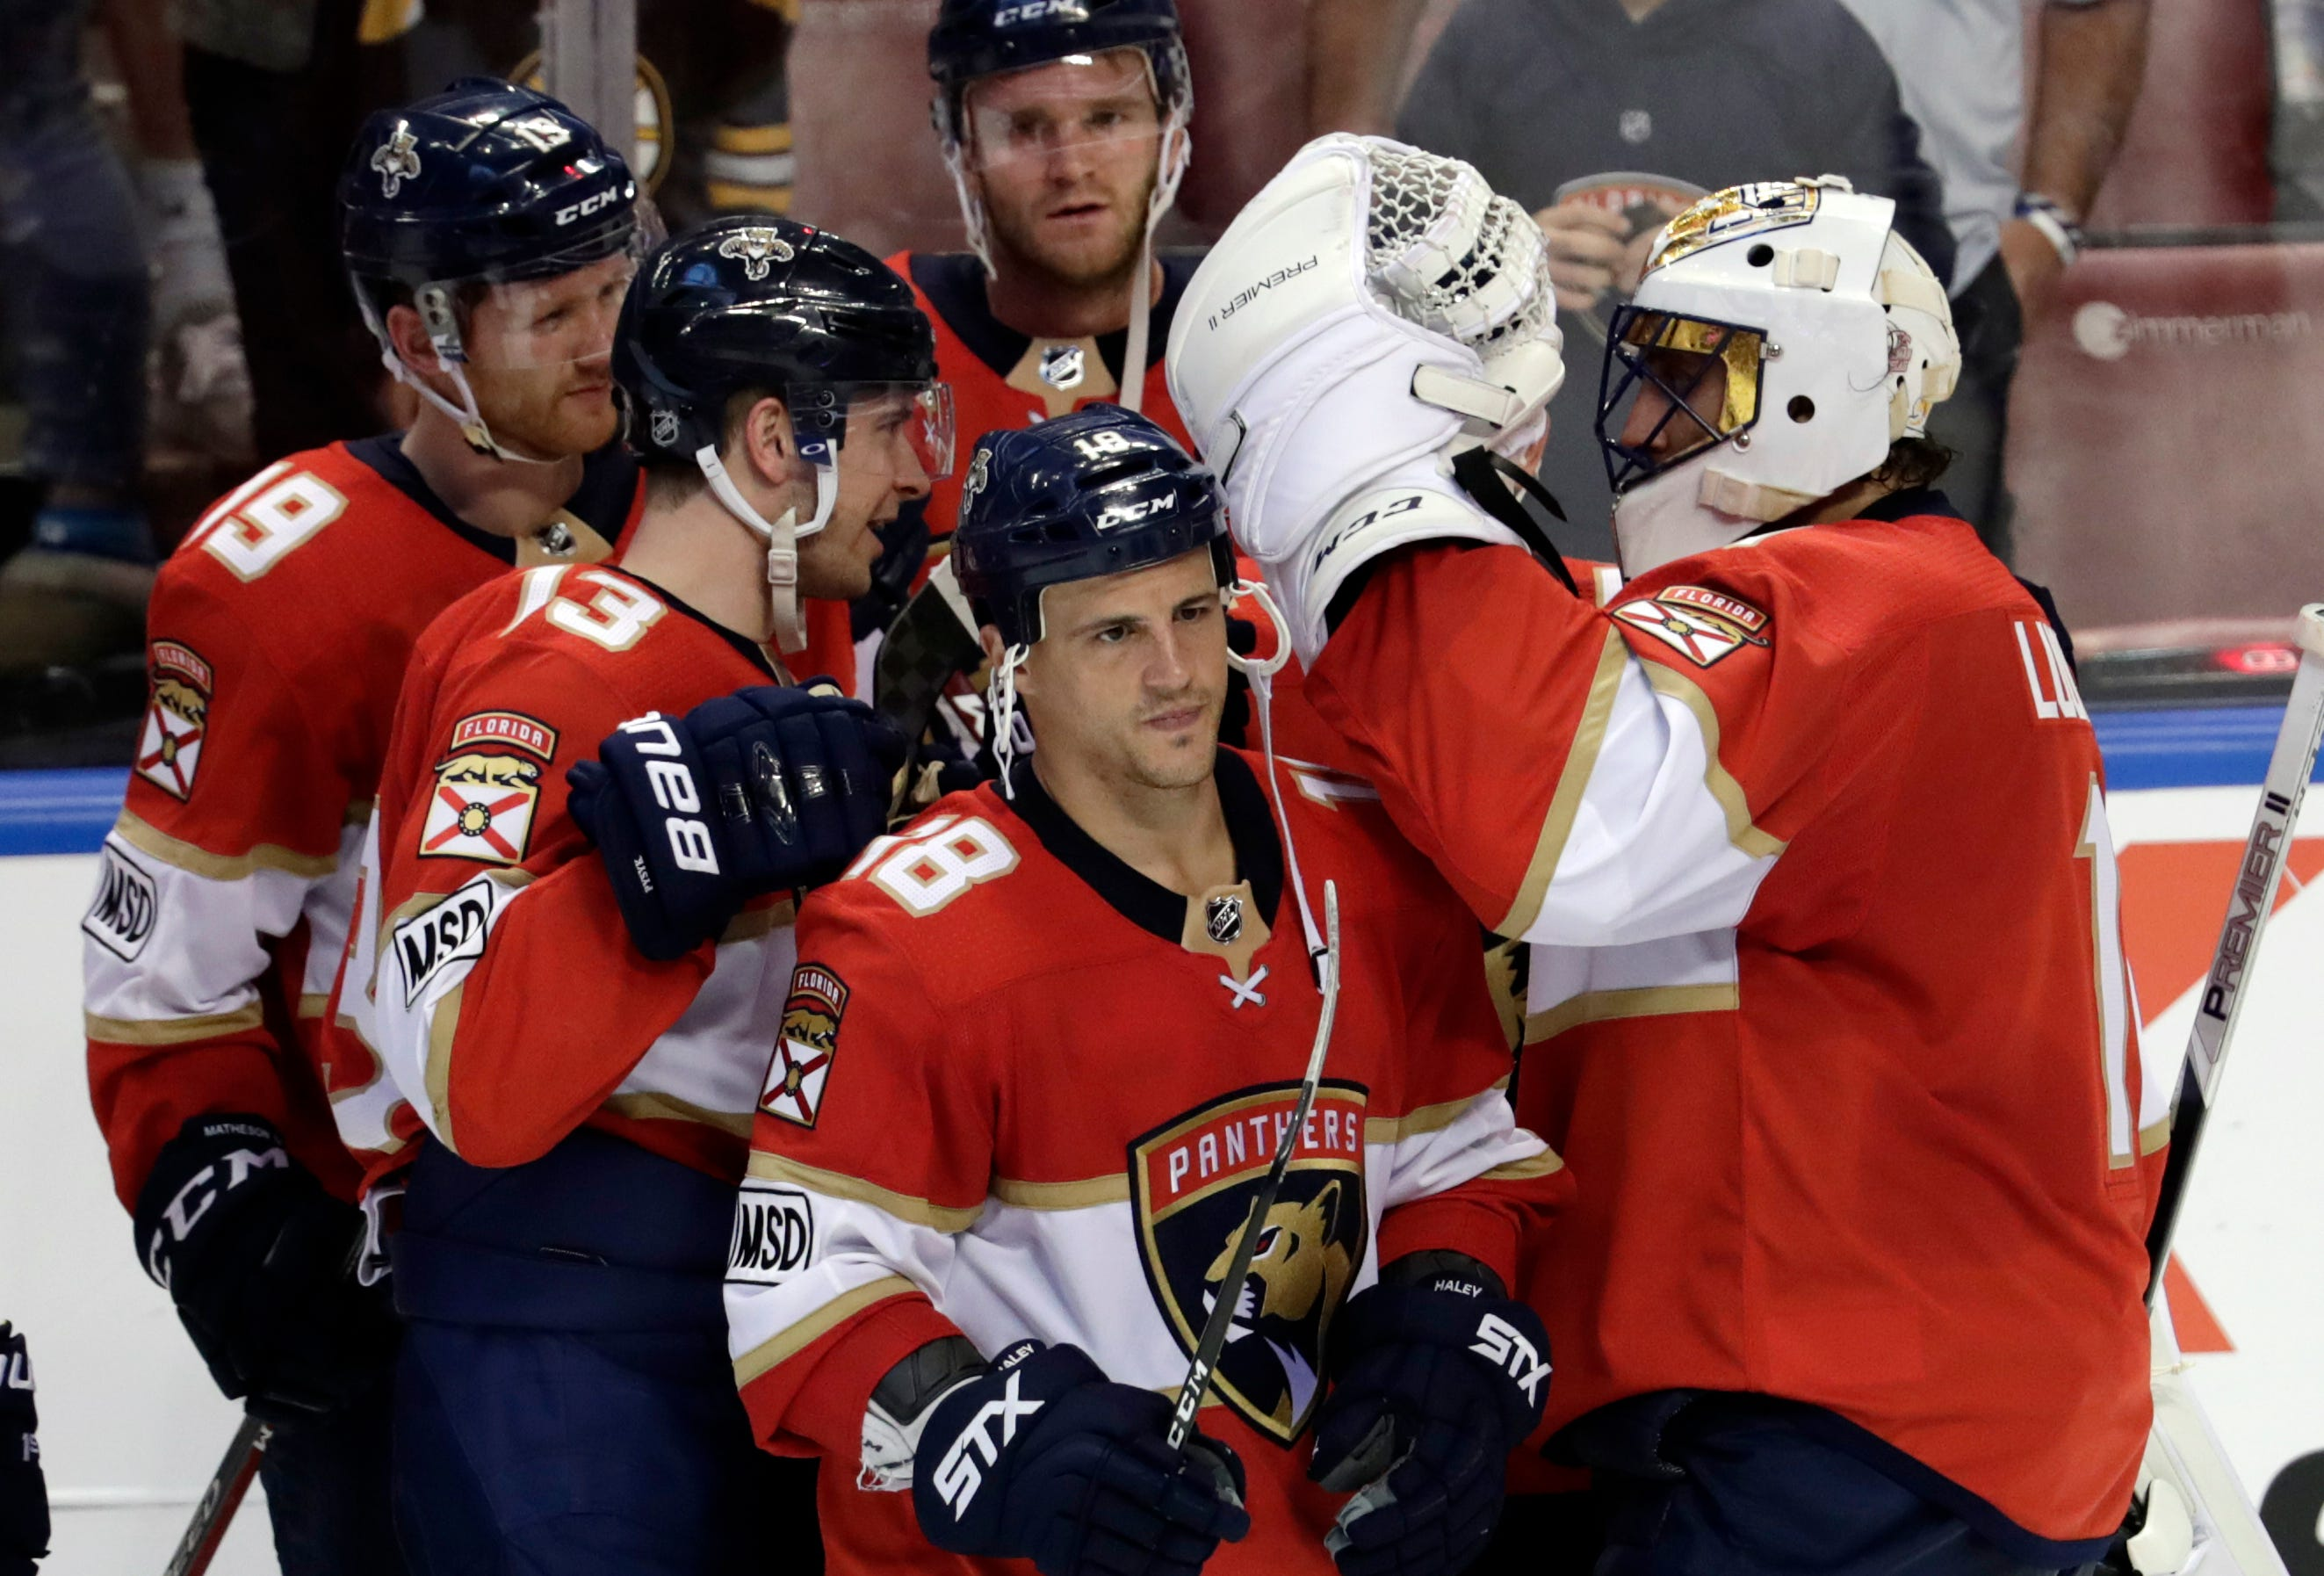 NHL says Flyers, Panthers could play tiebreaker game